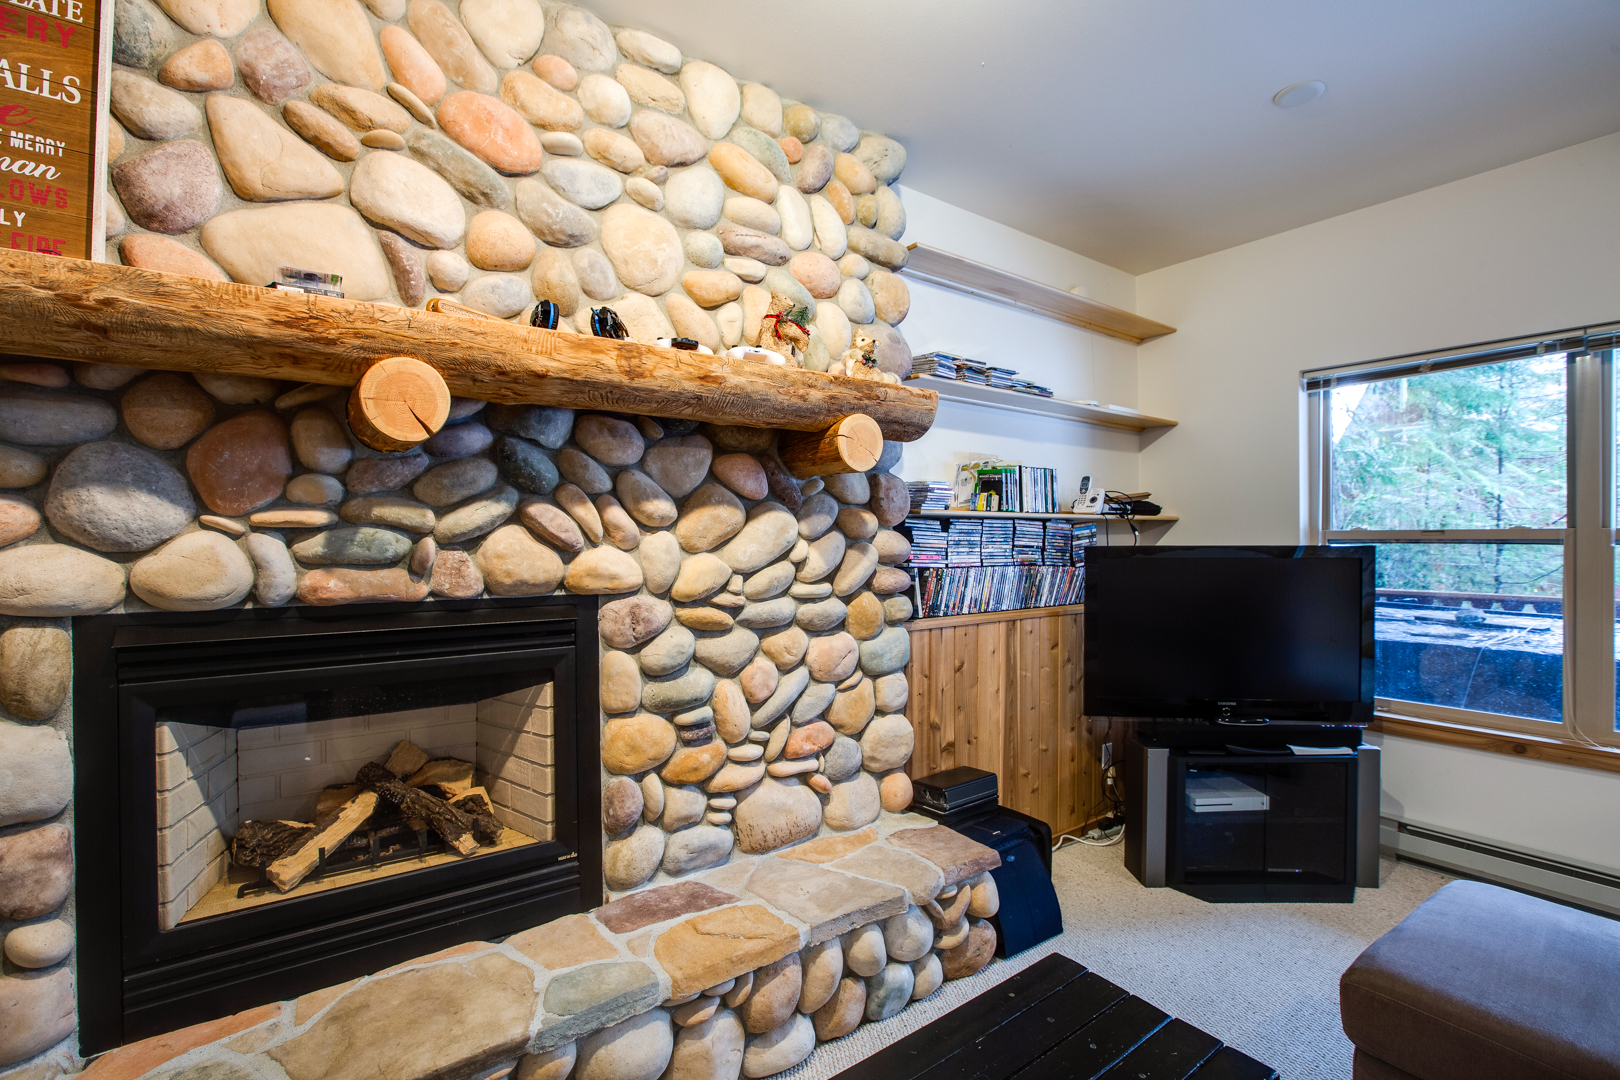 Cozy up next to the gas fireplace